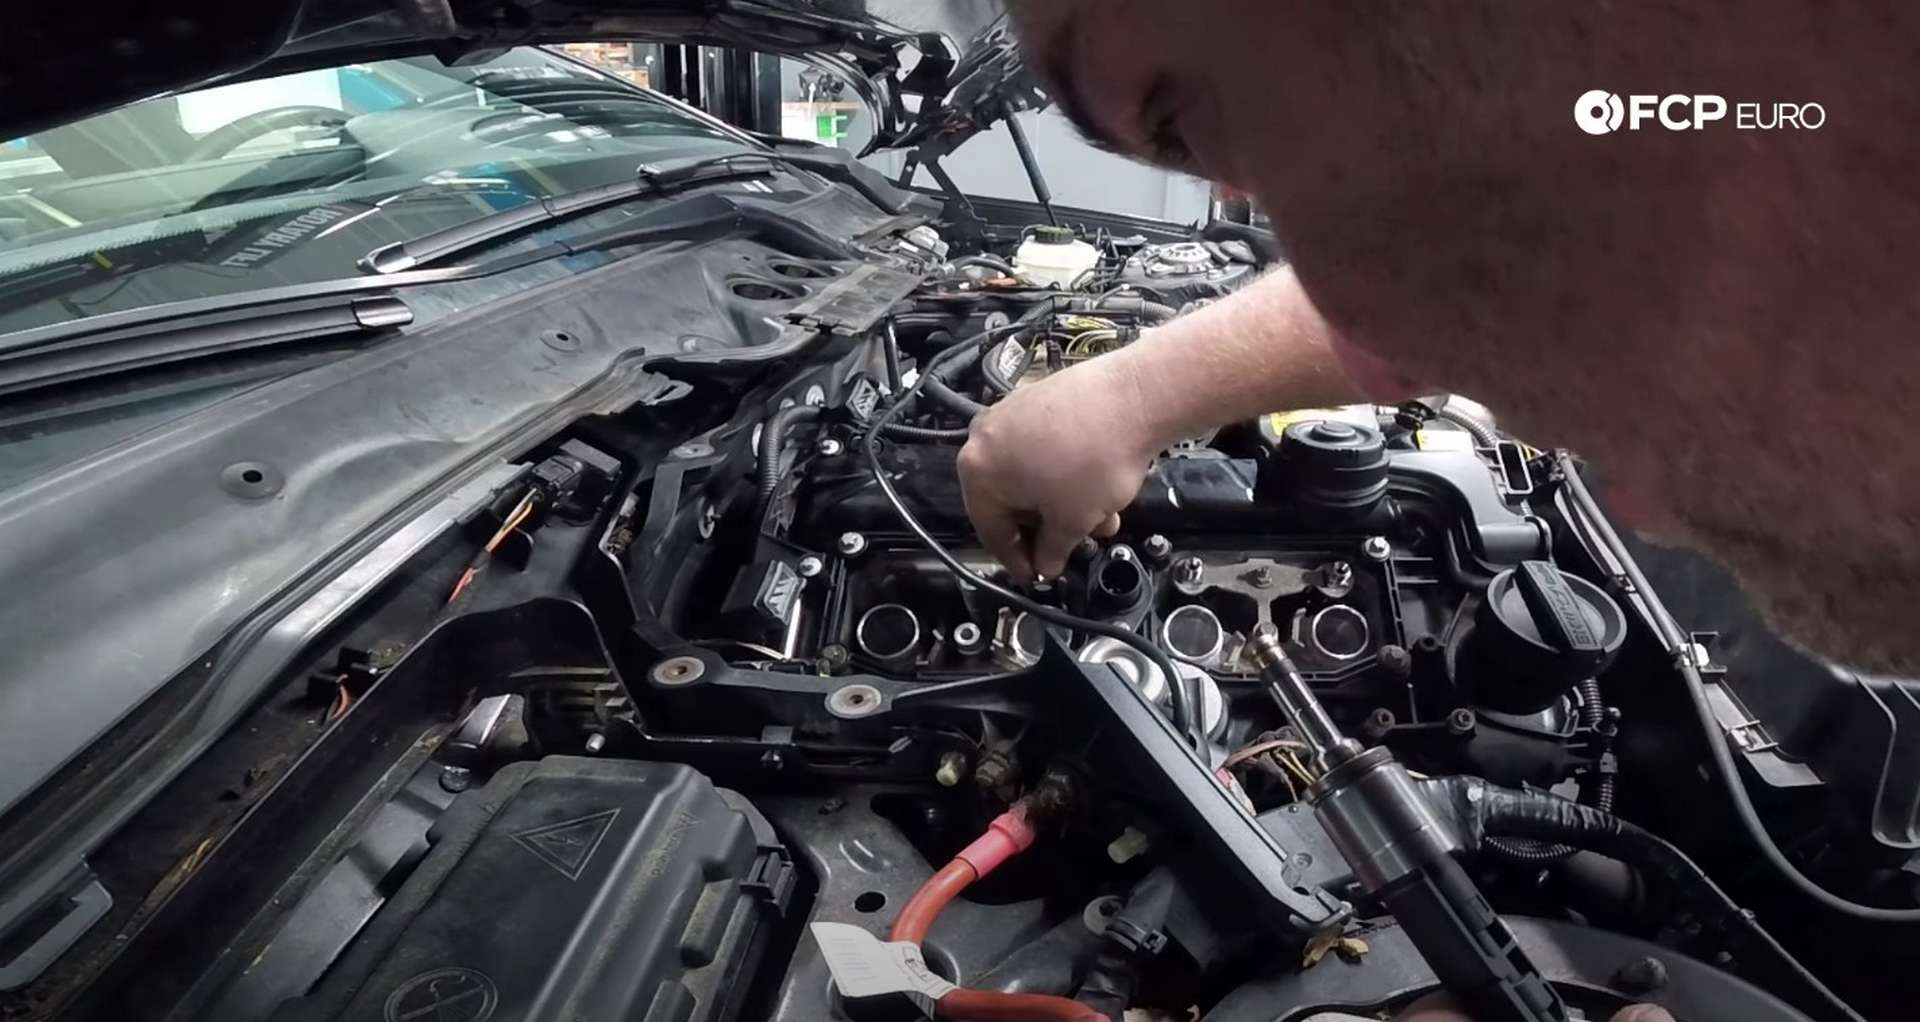 DIY BMW F30 Fuel Injector Replacement placing the injector in the head